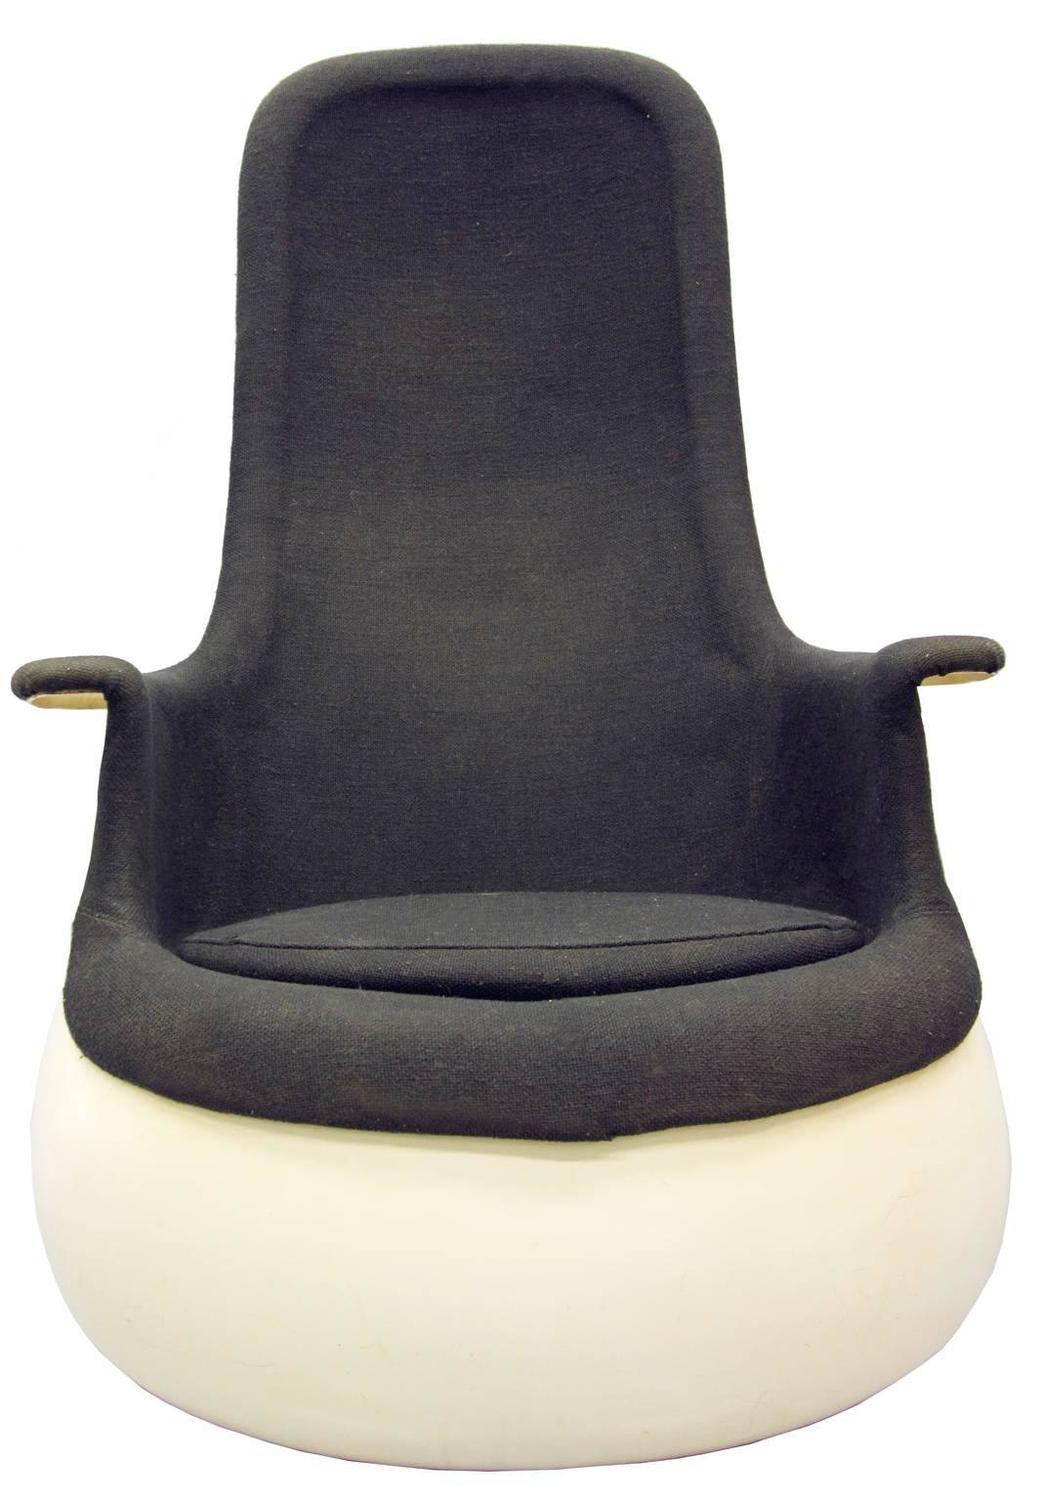 Marc Held Culbuto Chair For Knoll For Sale At 1stdibs